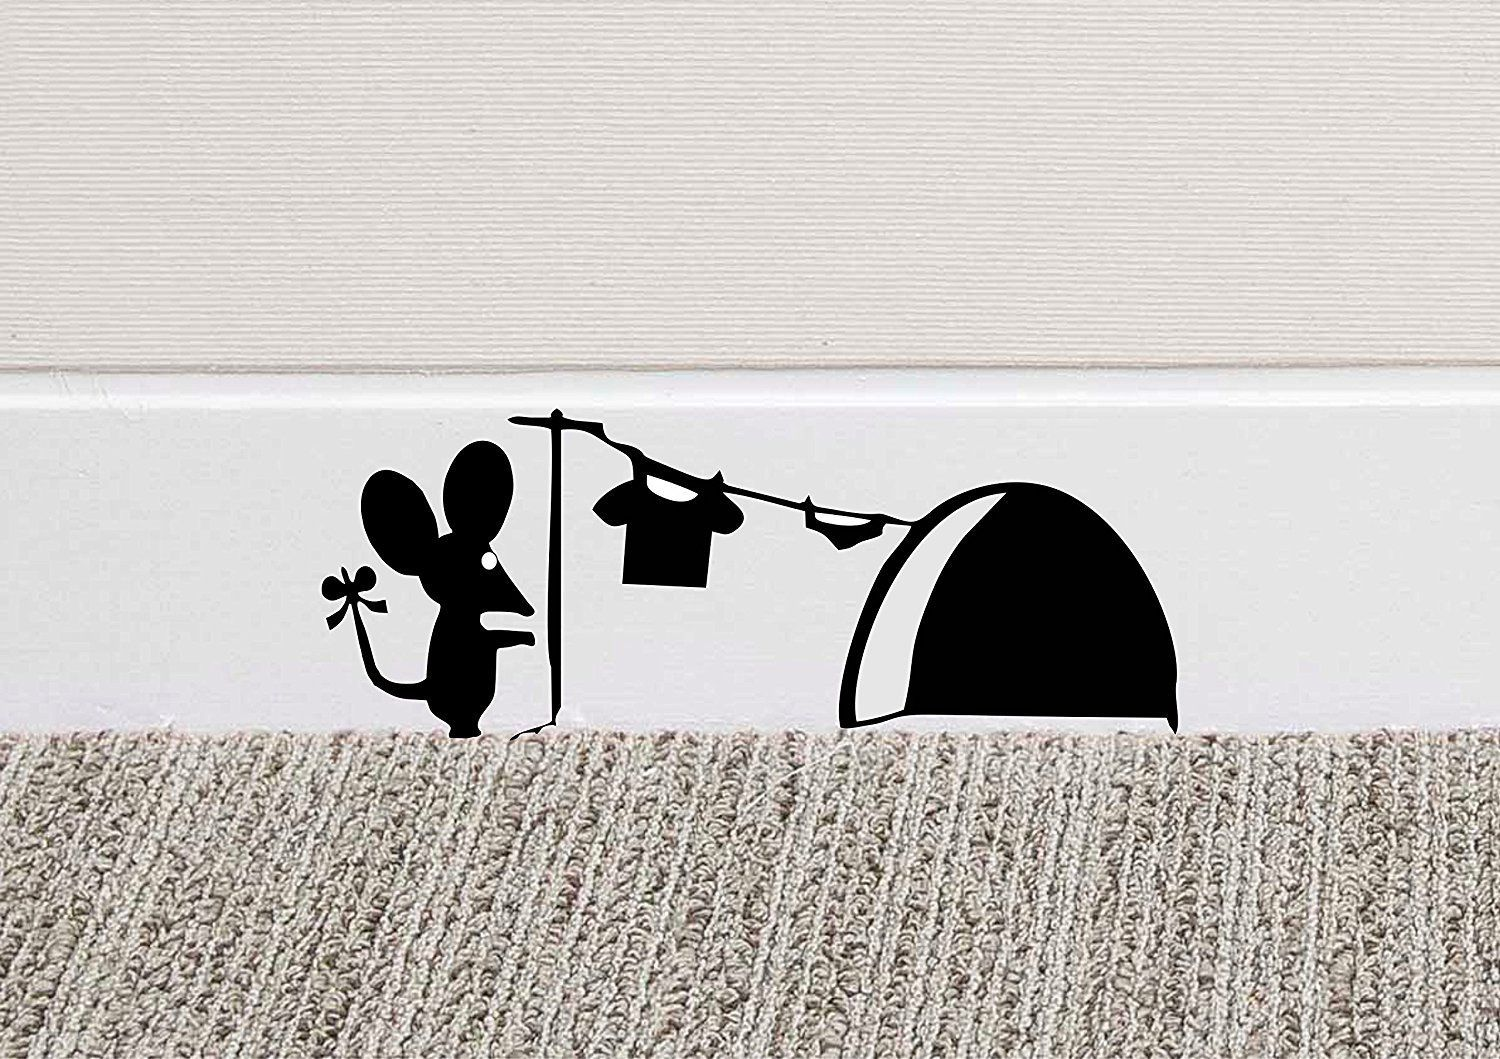 B mouse hole wall art sticker washing vinyl decal mice home